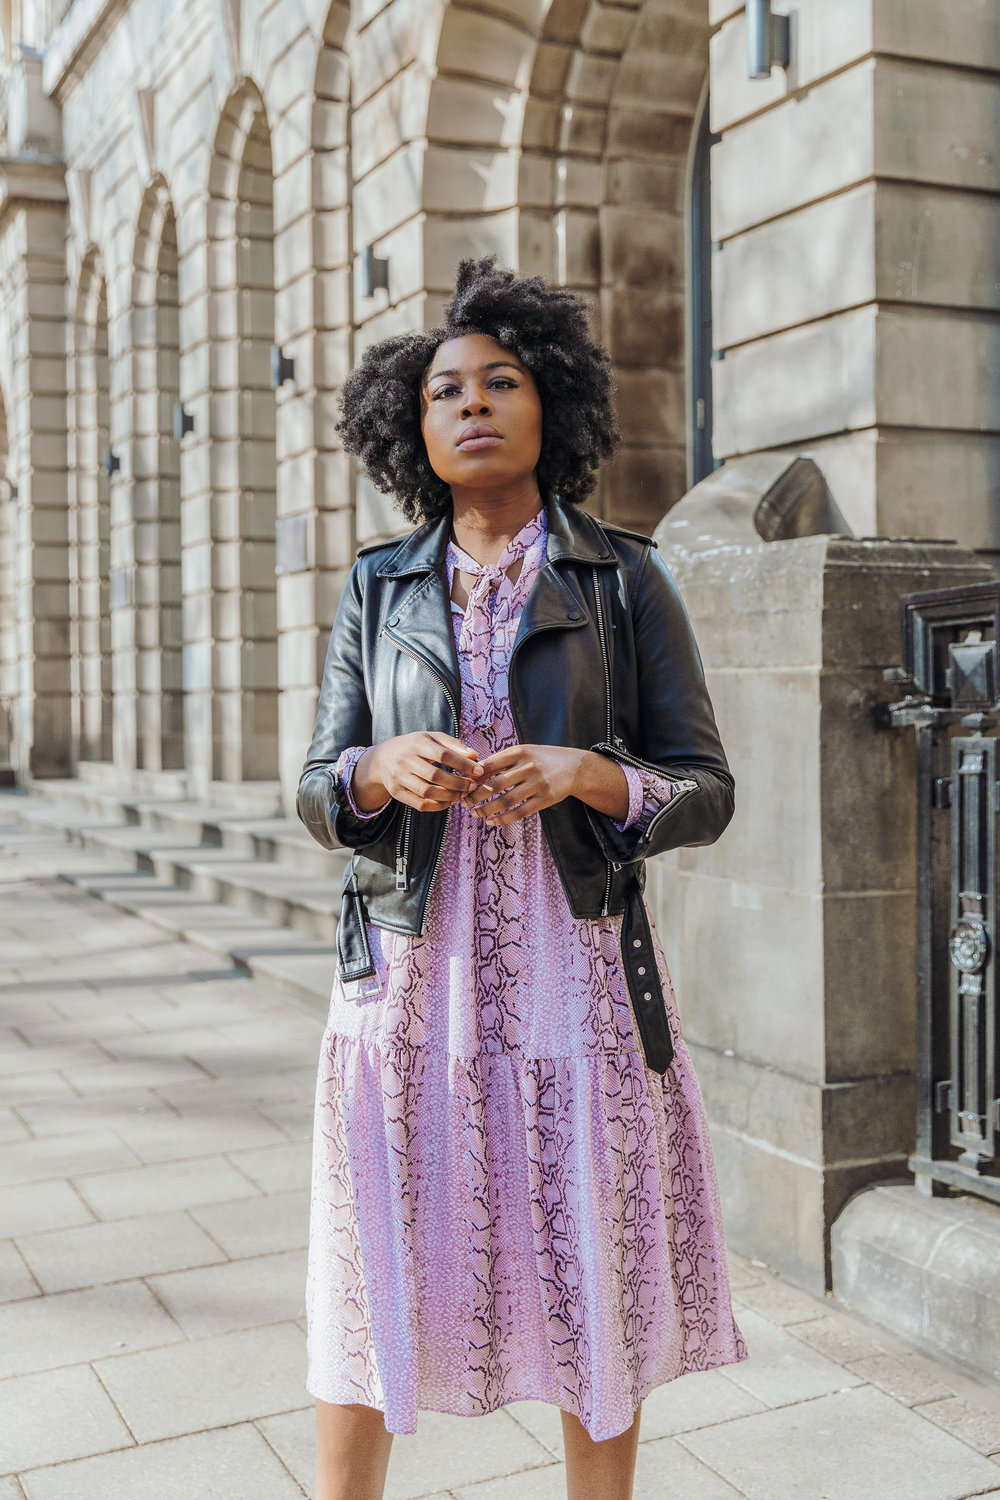 How To Transition Your Wardrobe From Winter To Spring